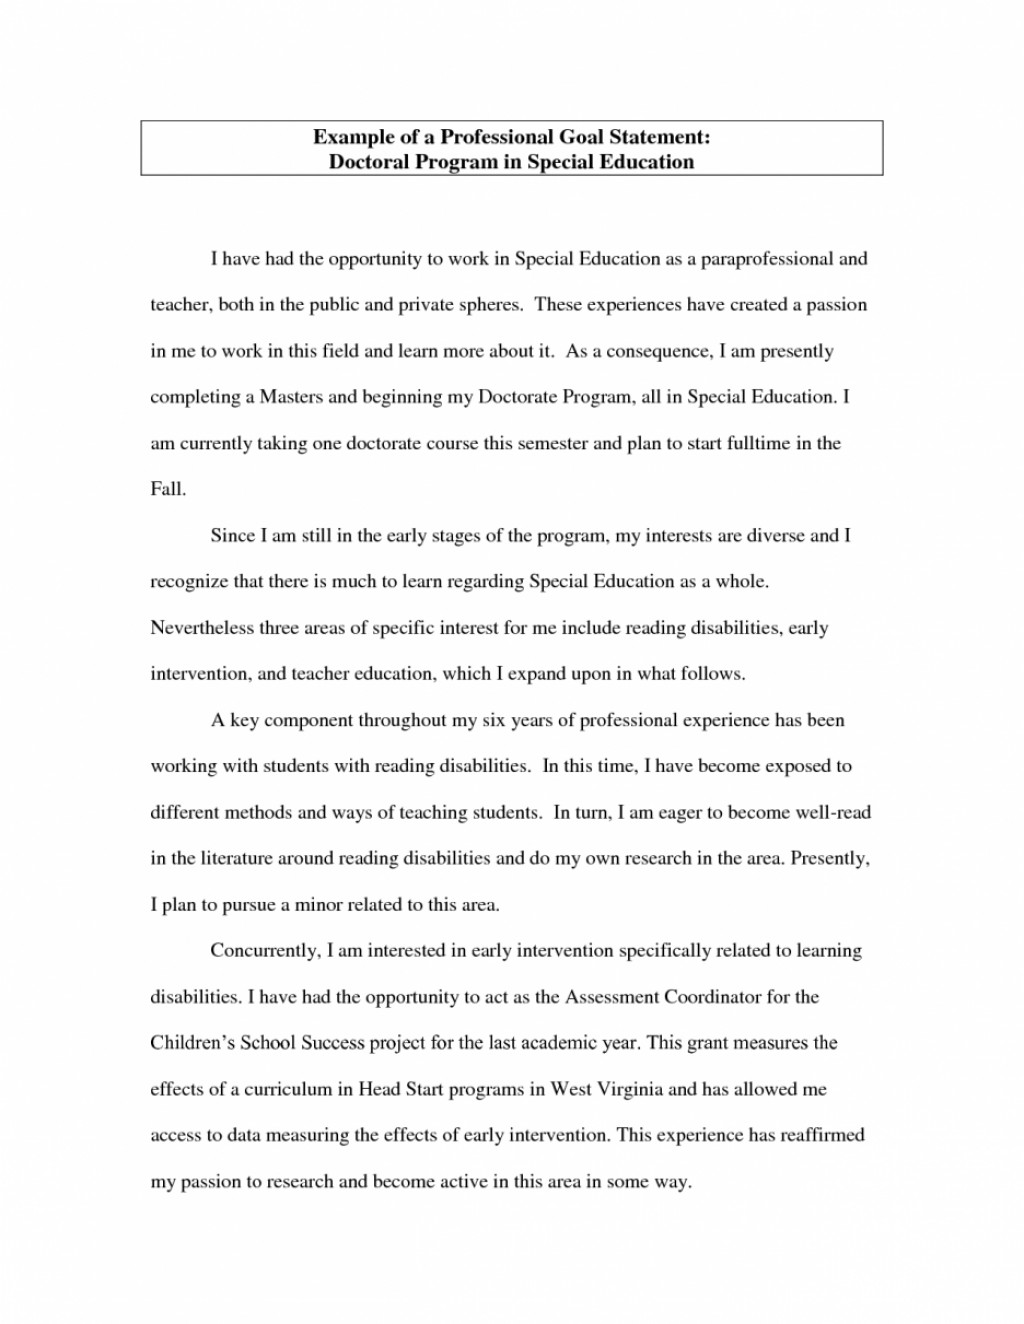 014 Career Objectives Essay Goal Statement Essays For Scholarshipss Mba Admission Nursing Sample Objective Graduate School Engineering College About 936x1211 Amazing Research Rubric Example Goals Large